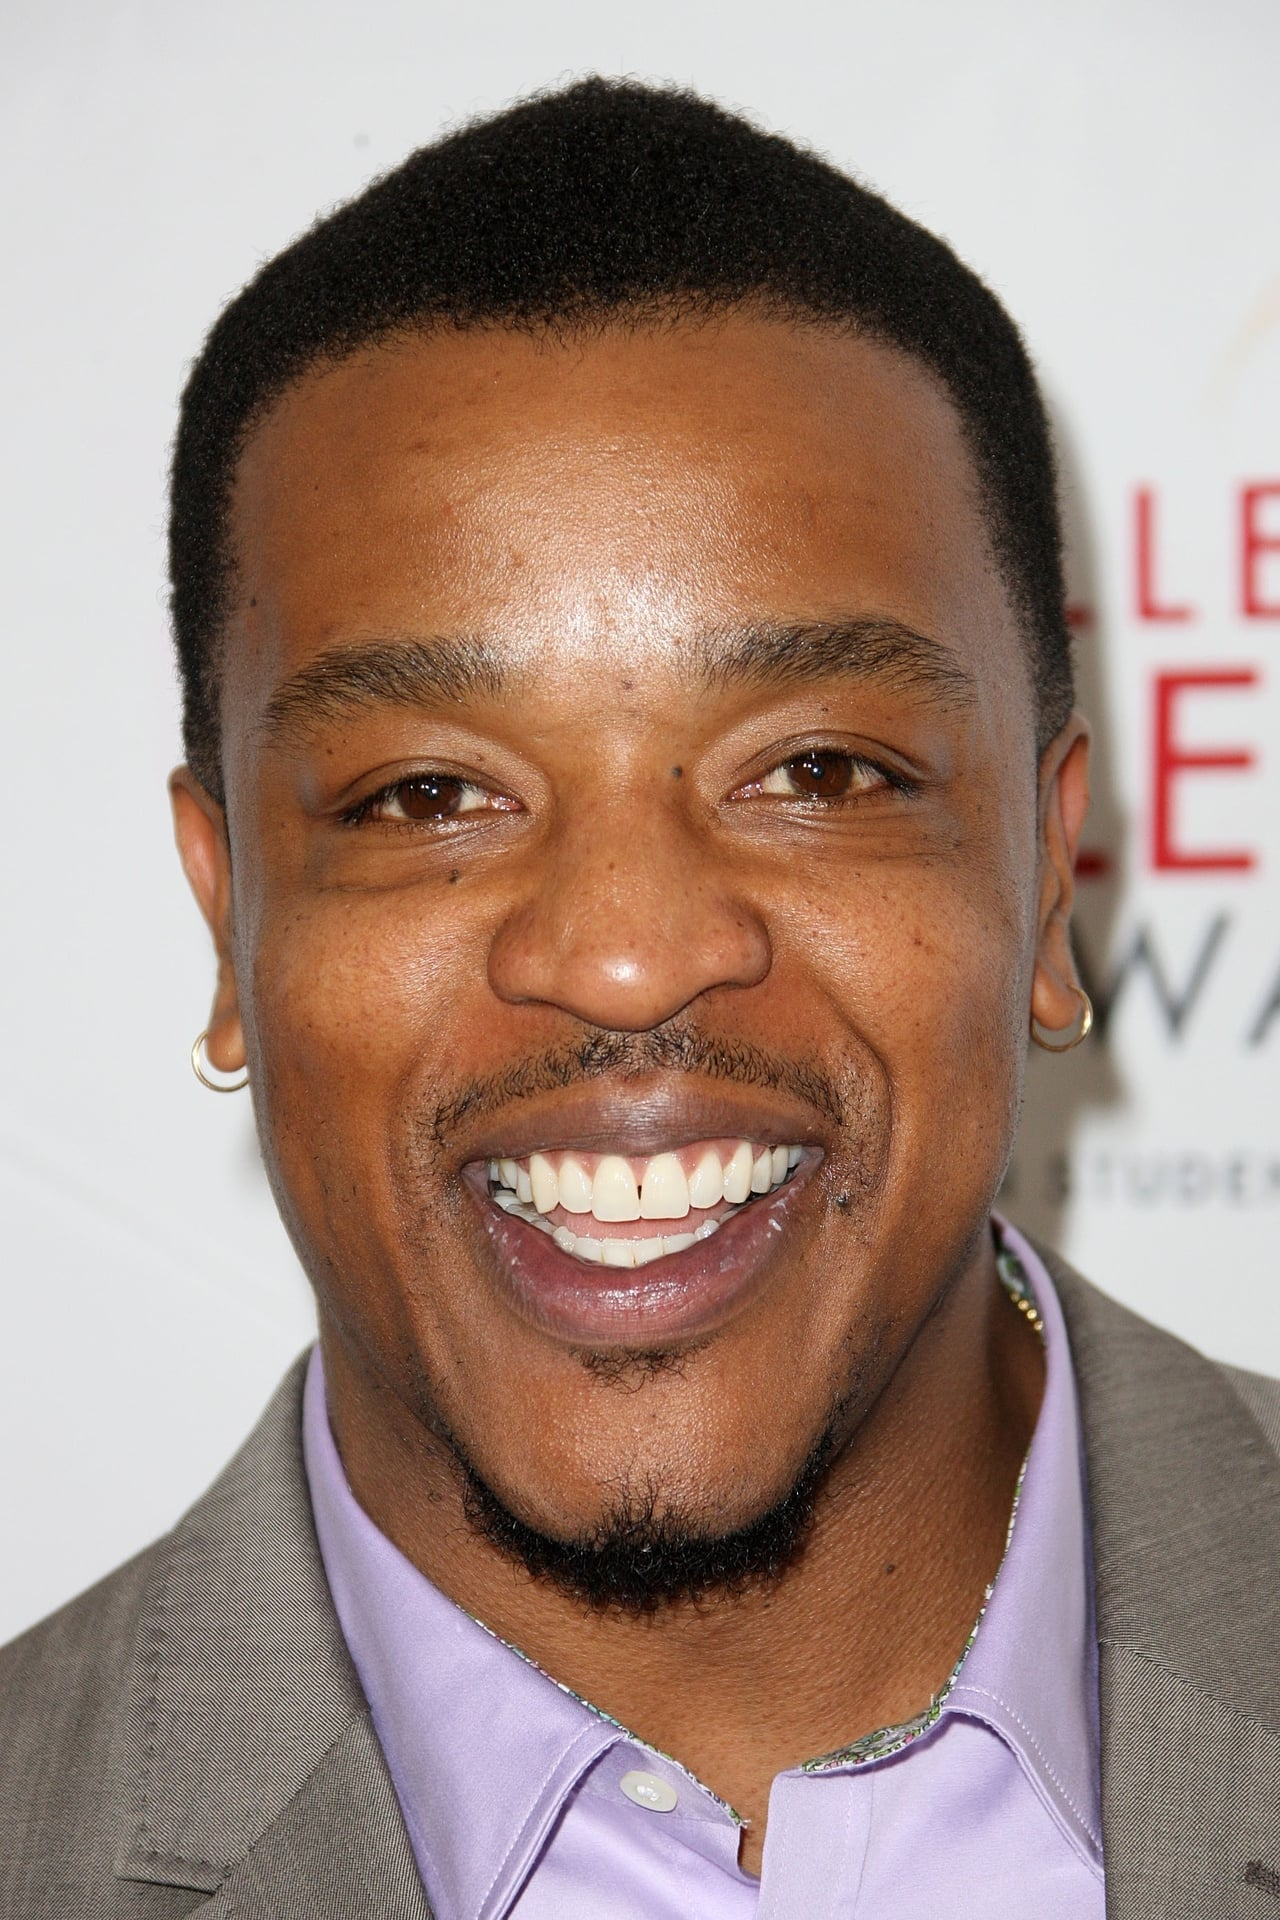 Russell Hornsby isBuddy Marcell